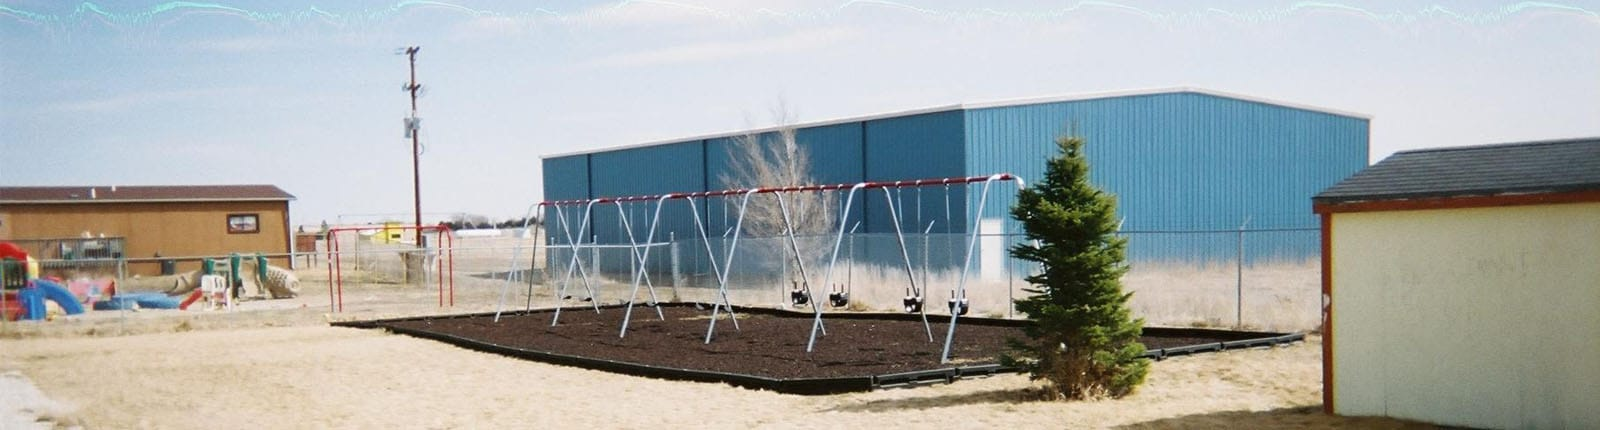 Individual Play Playground Equipment | Sterling West